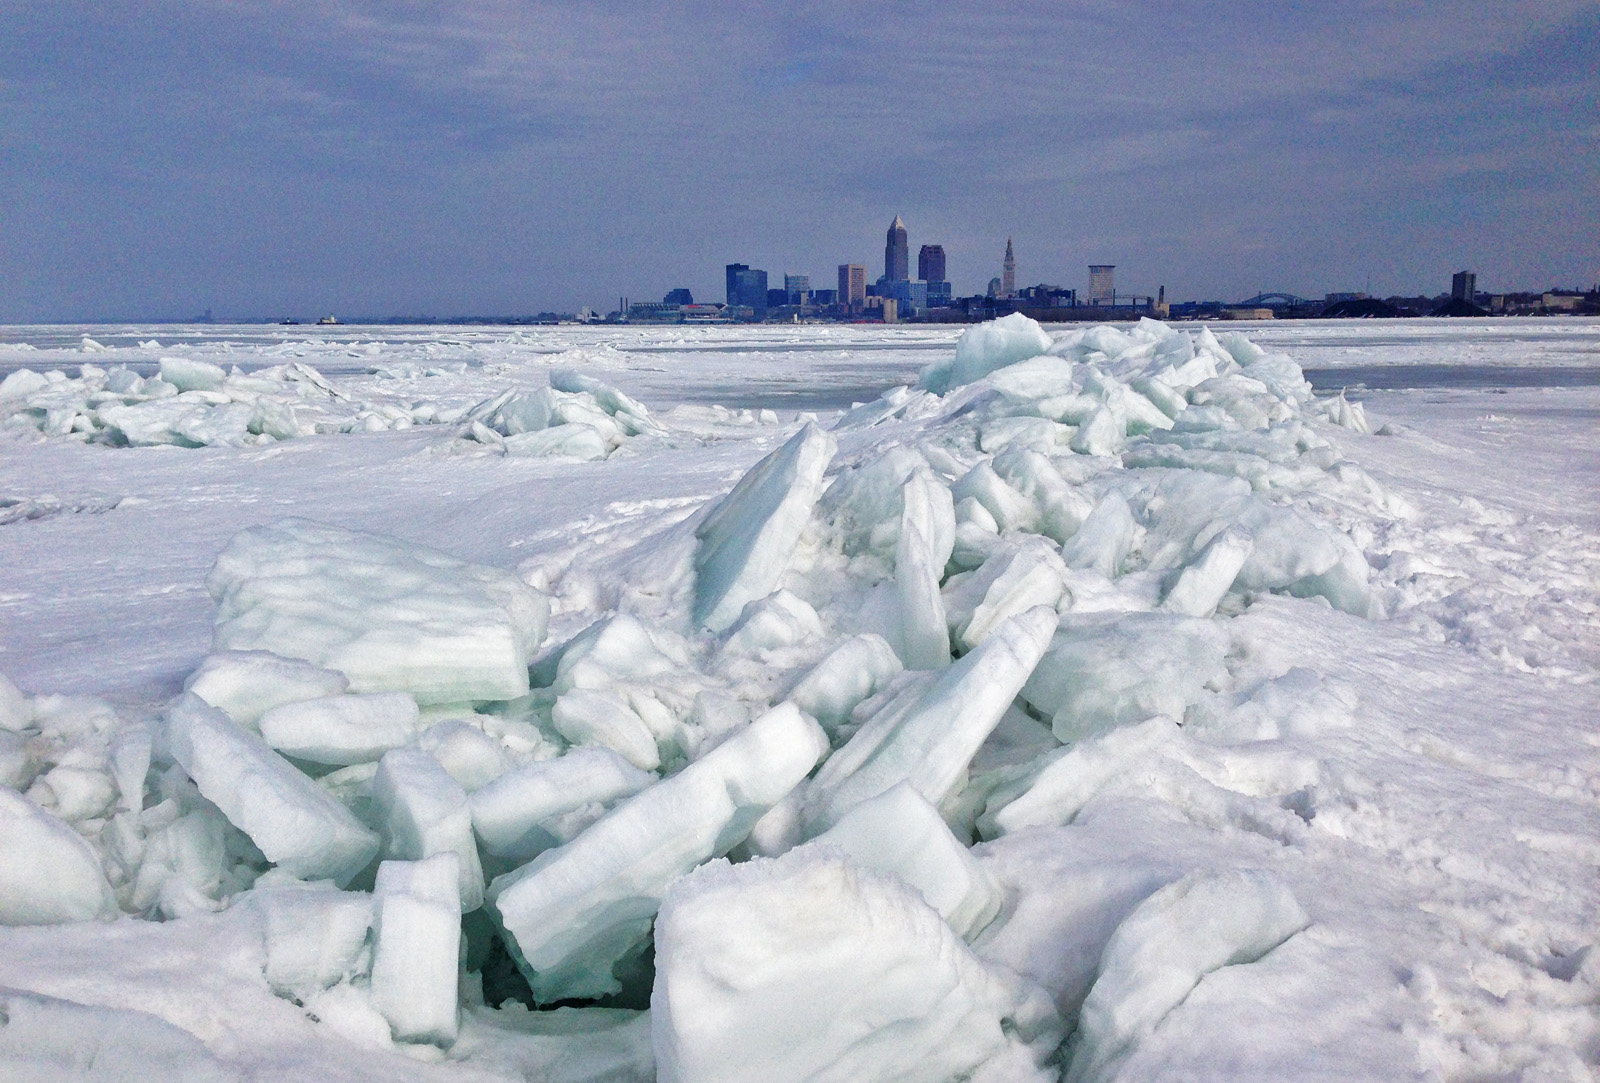 The view of Cleveland from Lake Erie on March 9, 2015